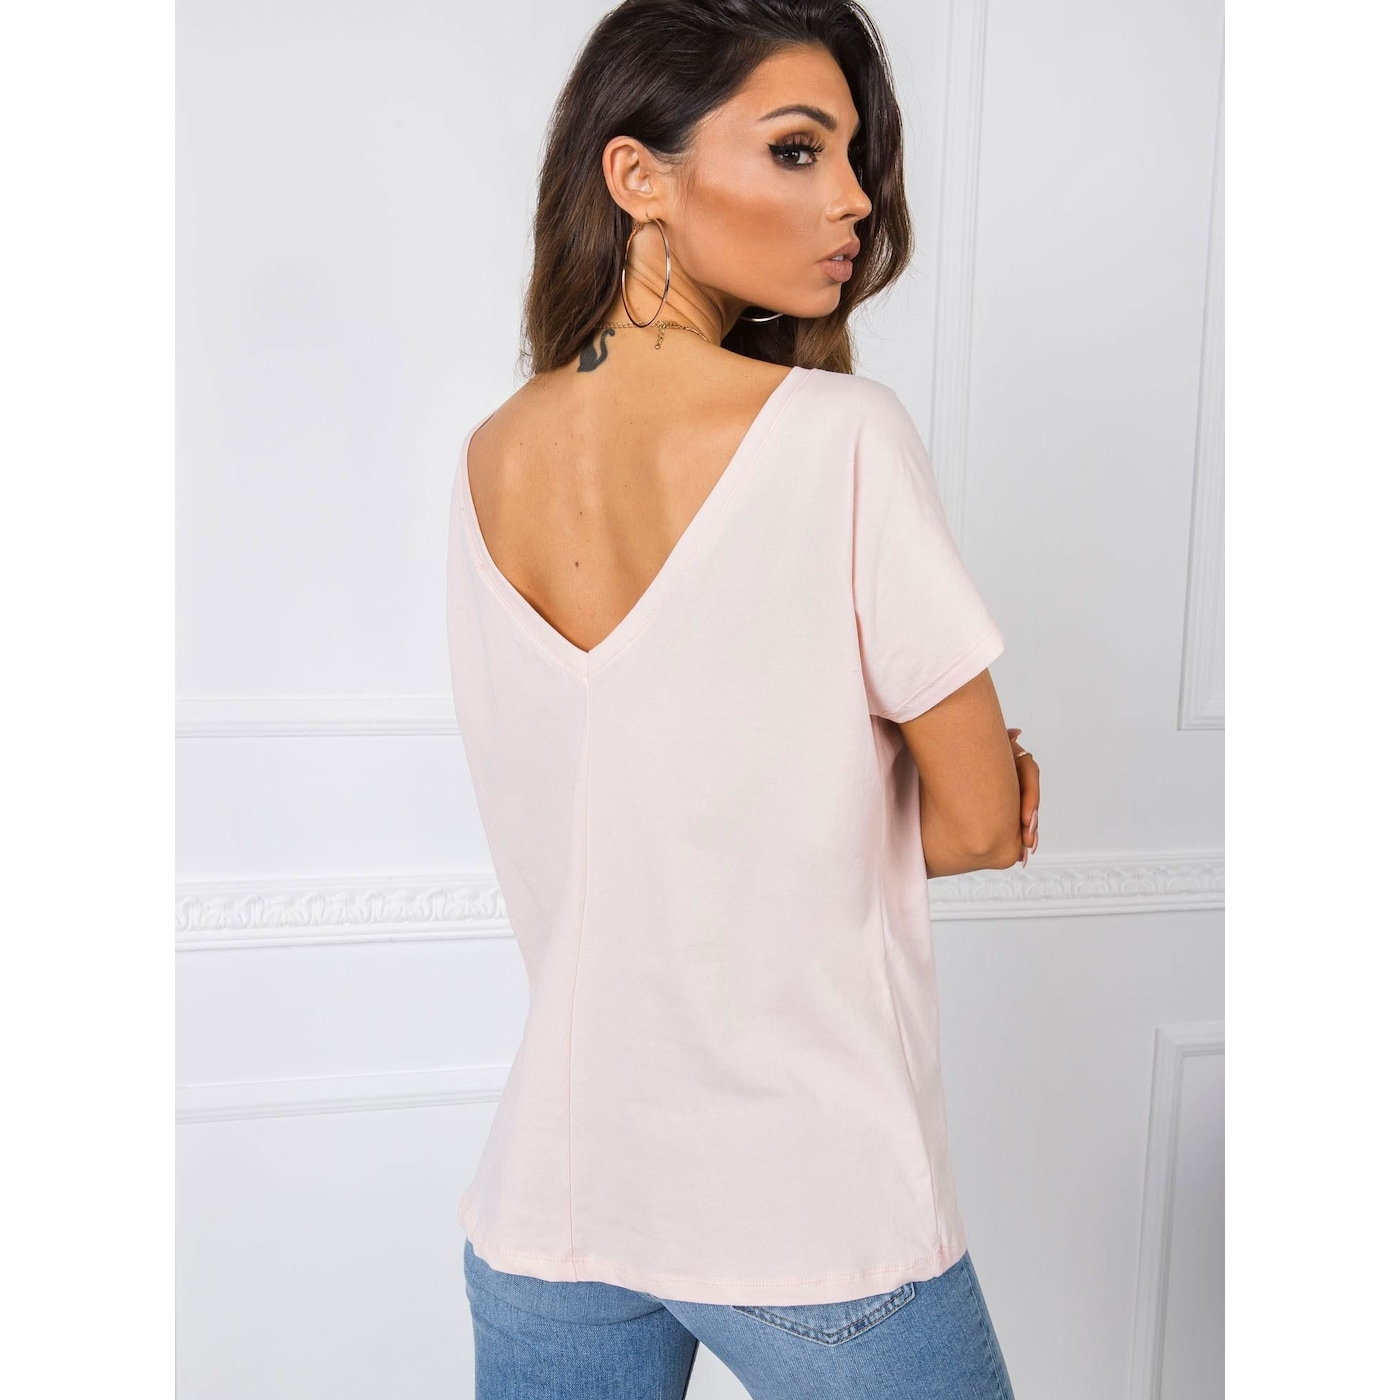 T-shirt with a neckline in the back light pink